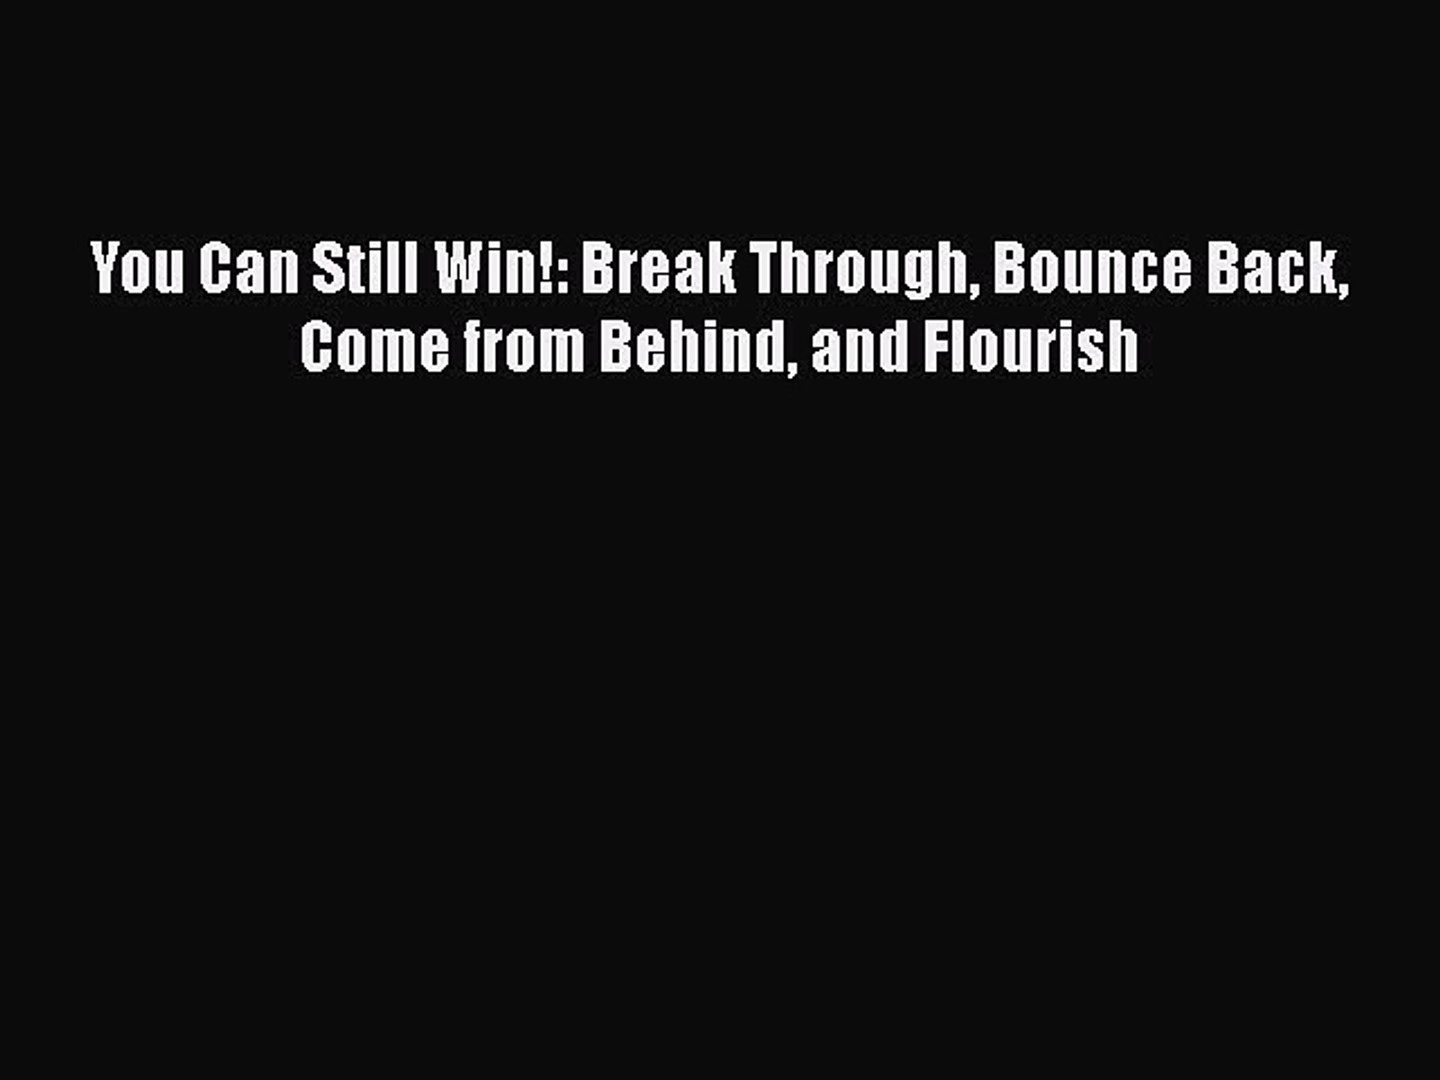 You Can Still Win!: Break Through, Bounce Back, Come from Behind and Flourish